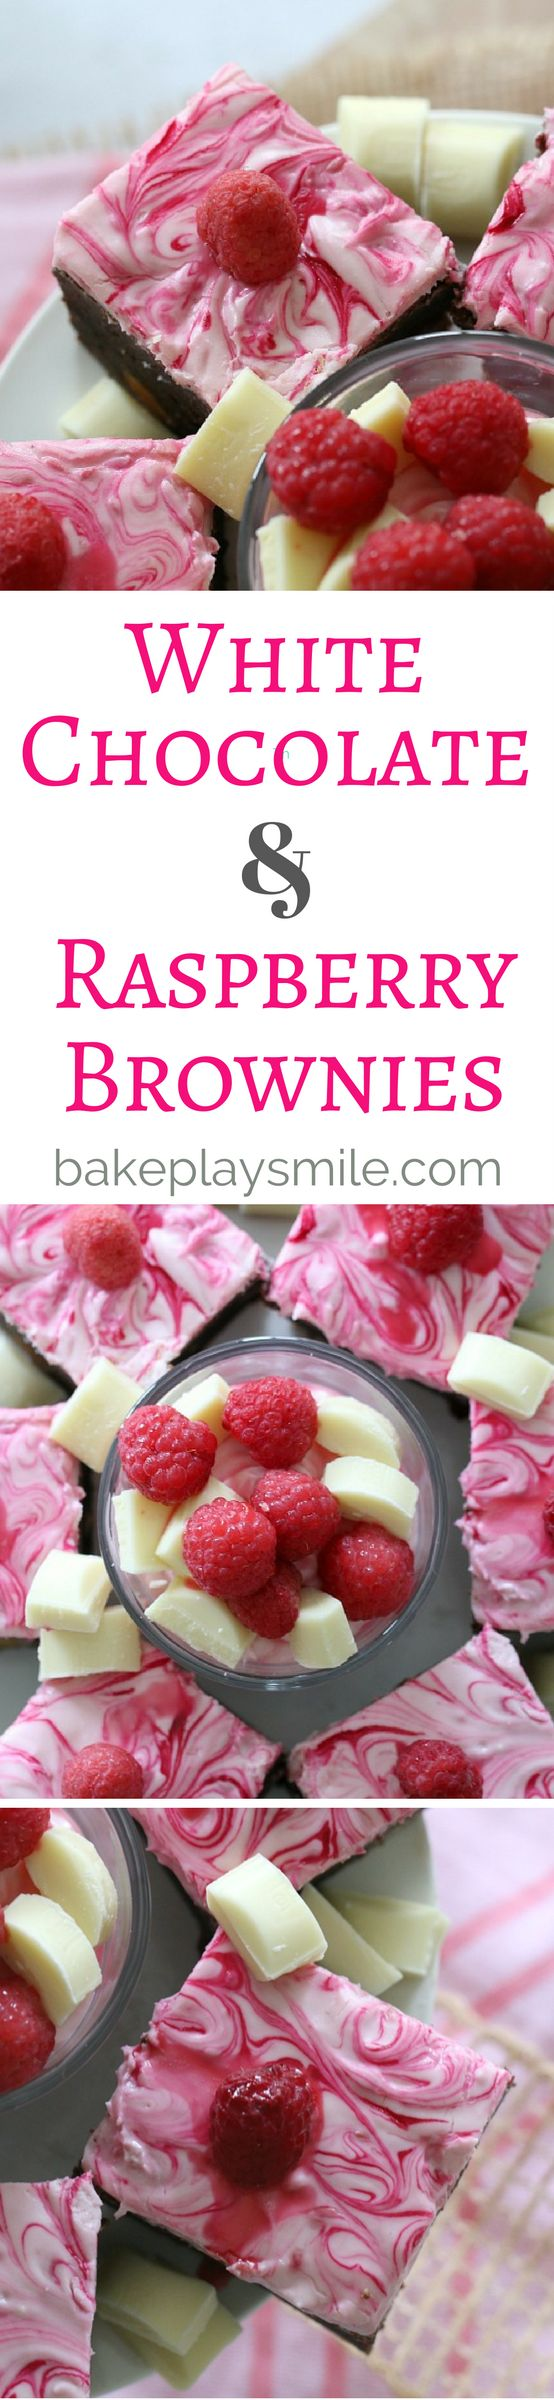 The very BEST White Chocolate & Raspberry Brownies!!!!!!!!!!!! Classic chewy and decadent white chocolate & raspberry brownies that are so simple to make… and are completely addictive. You won't be able to resist those big white chocolate chunks or tangy raspberries! #whitechocolate #raspberry #brownies #baking #easy #frosted #recipe #chocolate #conventional #thermomix